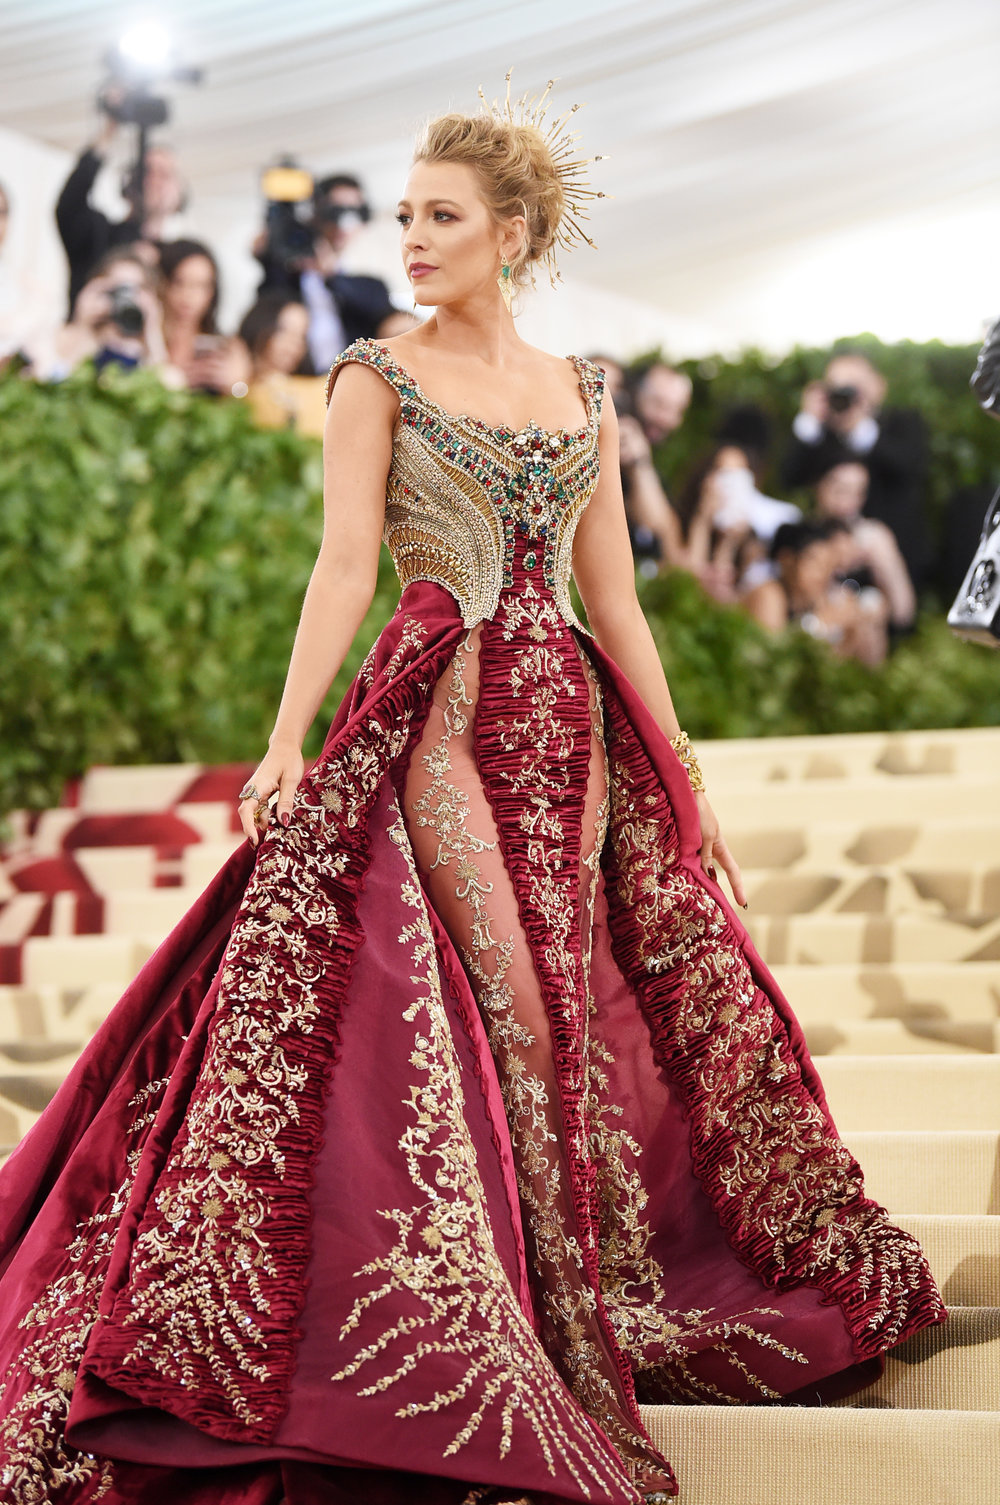 https://www.bustle.com/p/blake-livelys-2018-met-gala-dress-took-over-600-hours-to-make-it-was-worth-it-9017742